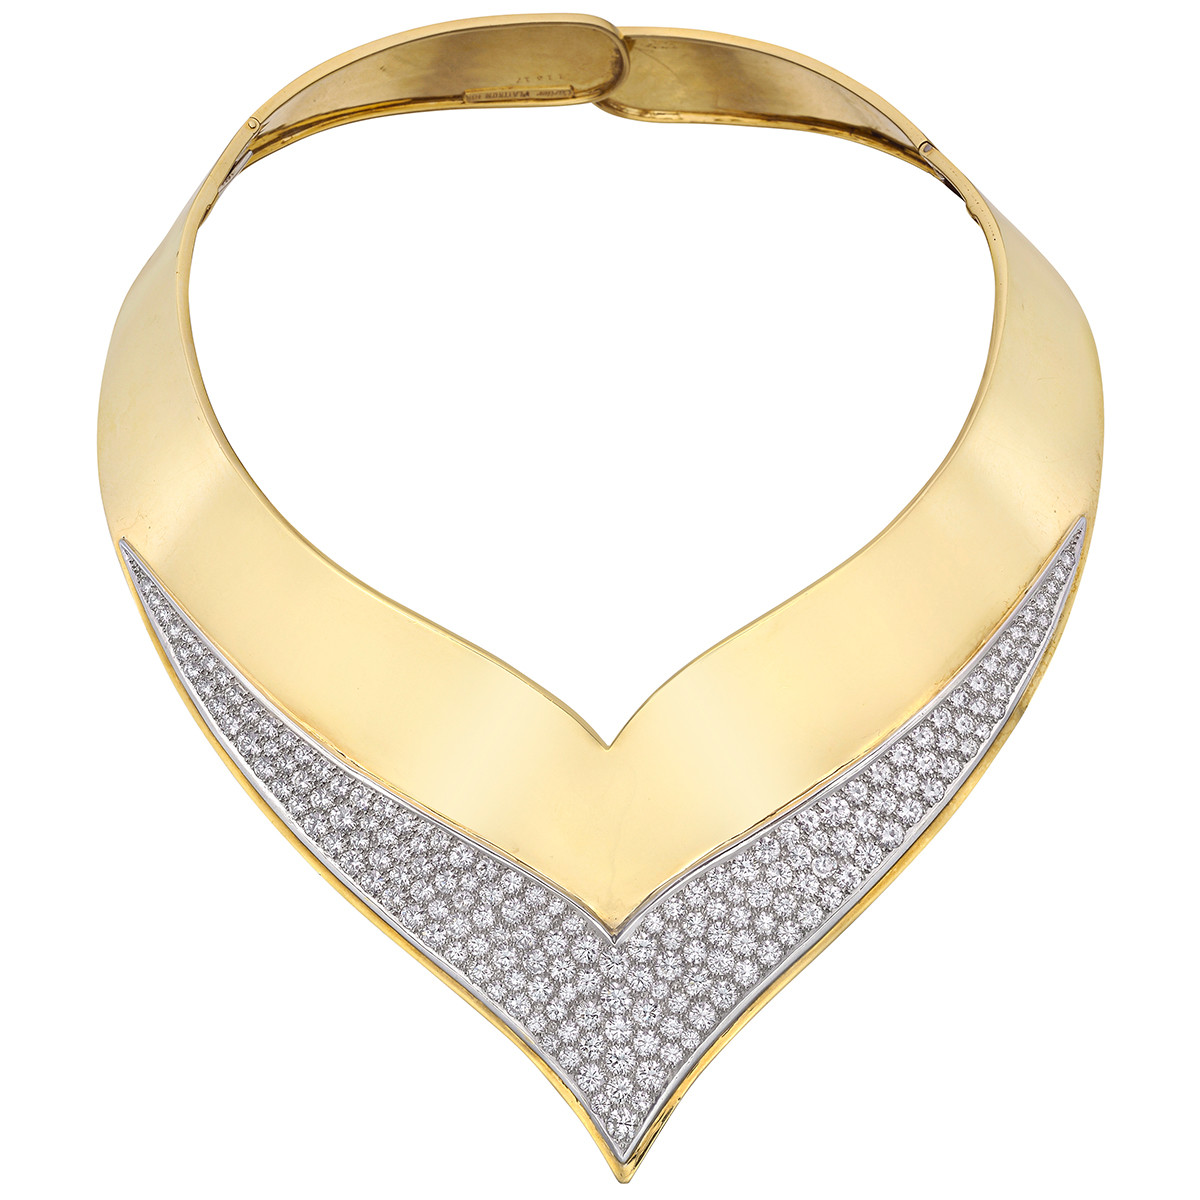 1960s 18k Yellow Gold & Diamond Collar Necklace